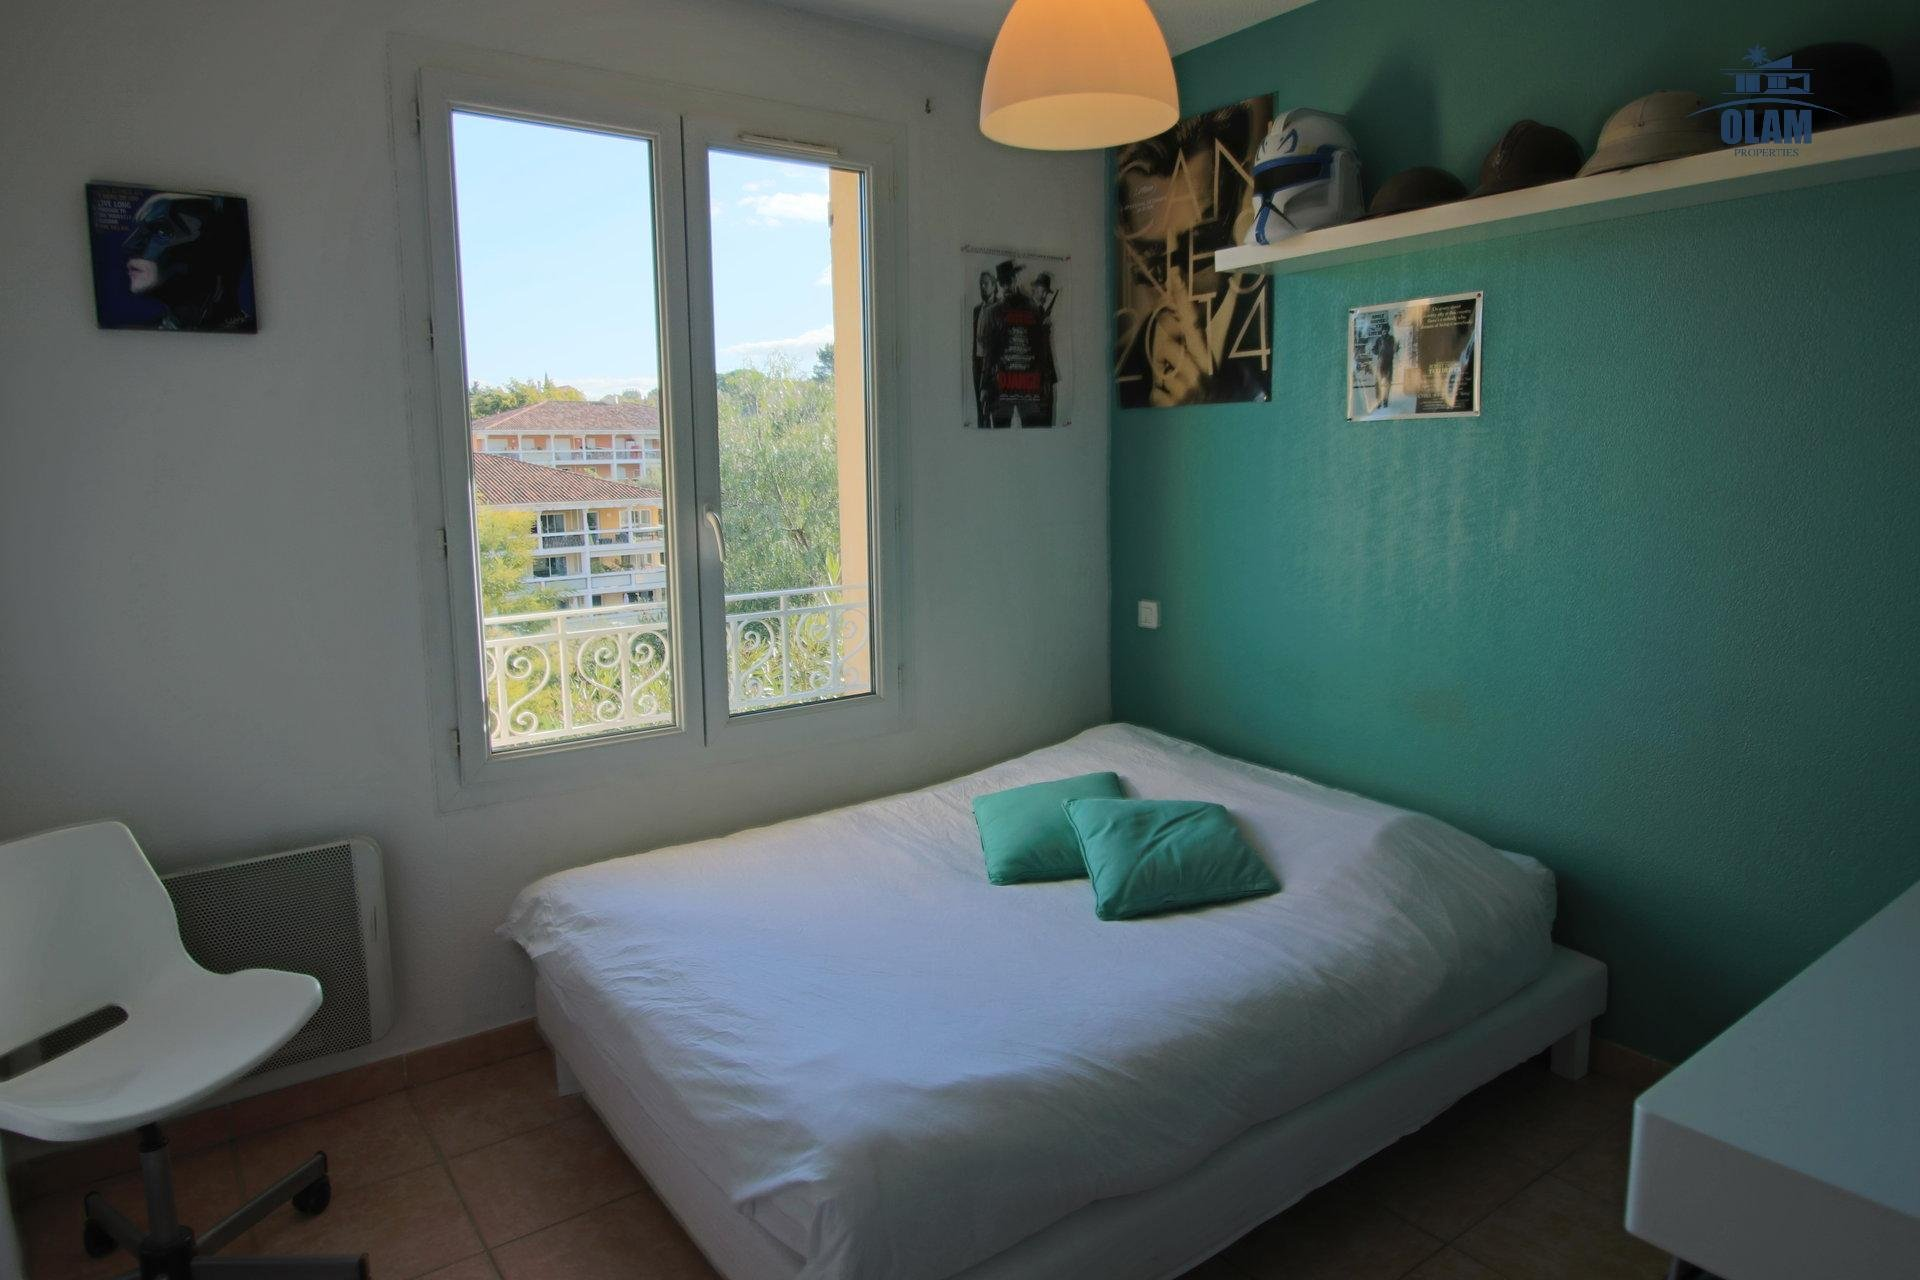 Bedroom, queensize bed, city view, villa, Cannes, La Croisette, French Riviera